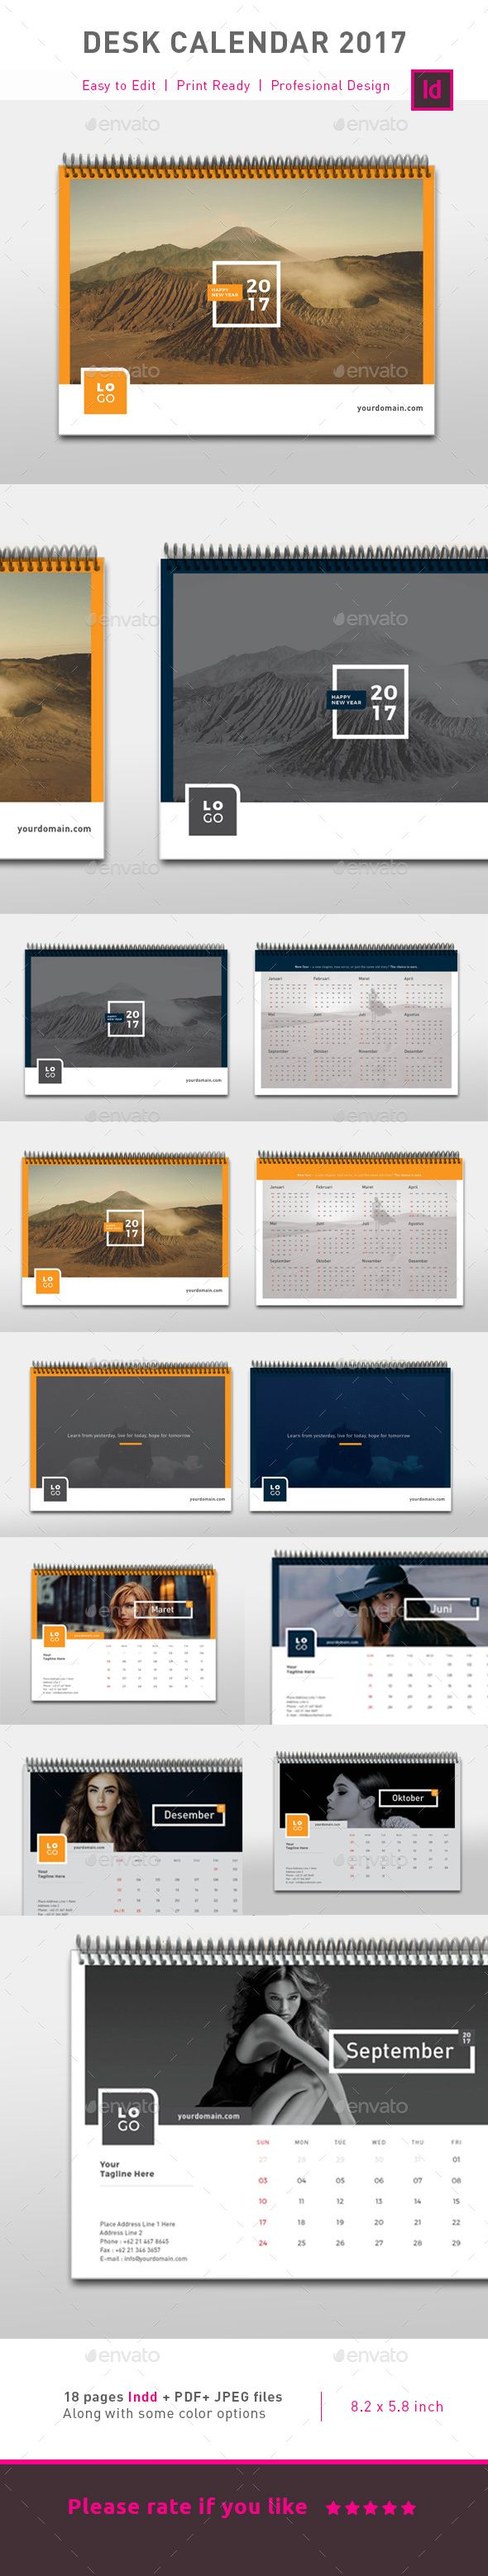 Clean Calendar 2017 — InDesign INDD #template • Download ➝ https://graphicriver.net/item/clean-calendar-2017/19182205?ref=pxcr